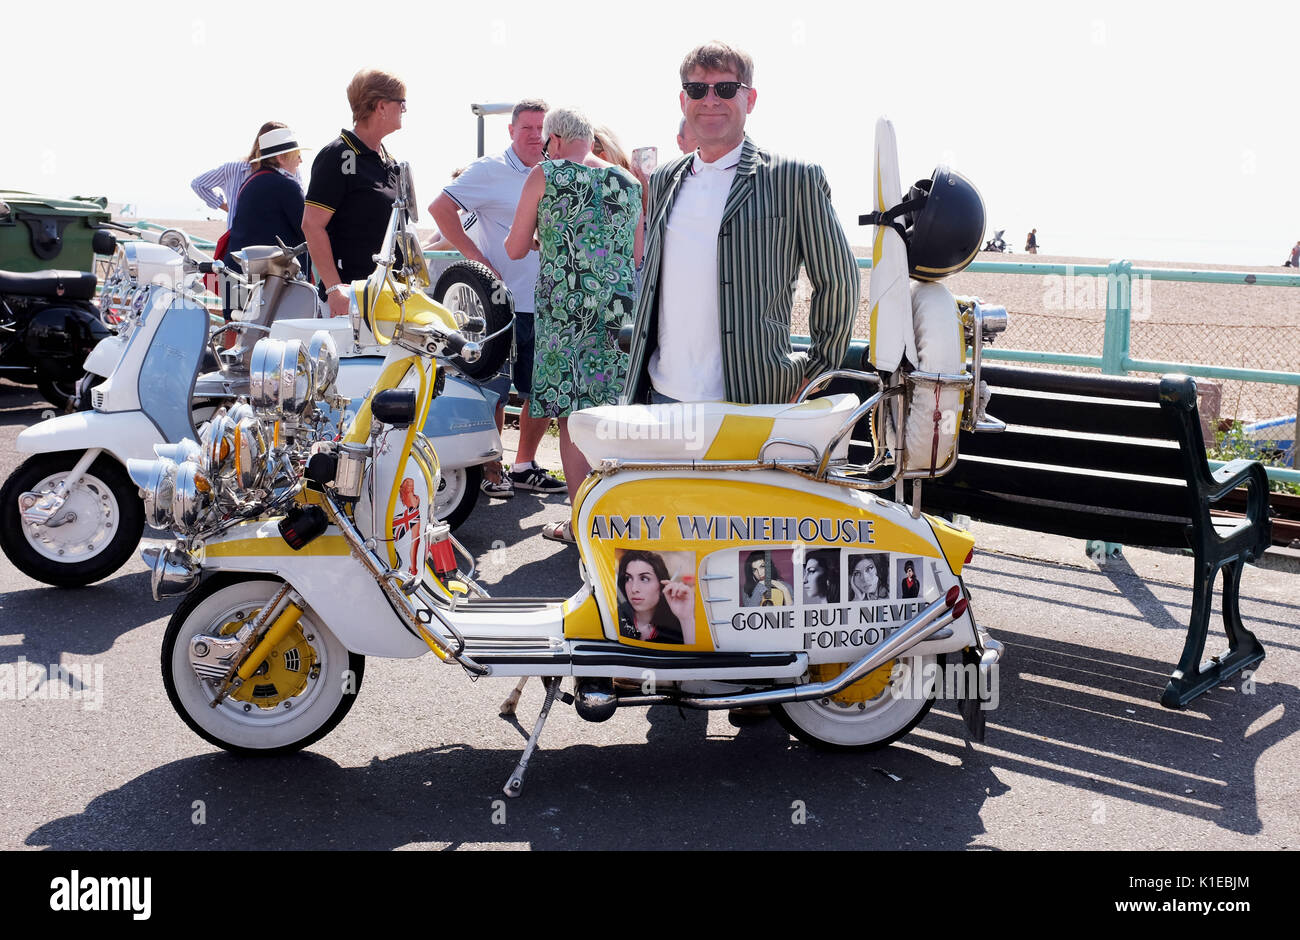 Brighton, UK. 27th Aug, 2017. Gerry Churchill with his Amy Winehouse scooter joined the hundreds of Mods taking part in the Brighton Mod Weekender event over the bank holiday weekend in beautiful hot sunny weather . Mods have tarditionally visited Brighton for the August Bank Holiday since the 1960s when there quite often used to be trouble on the seafront with battles between themselves and rockers Credit: Simon Dack/Alamy Live News - Stock Image